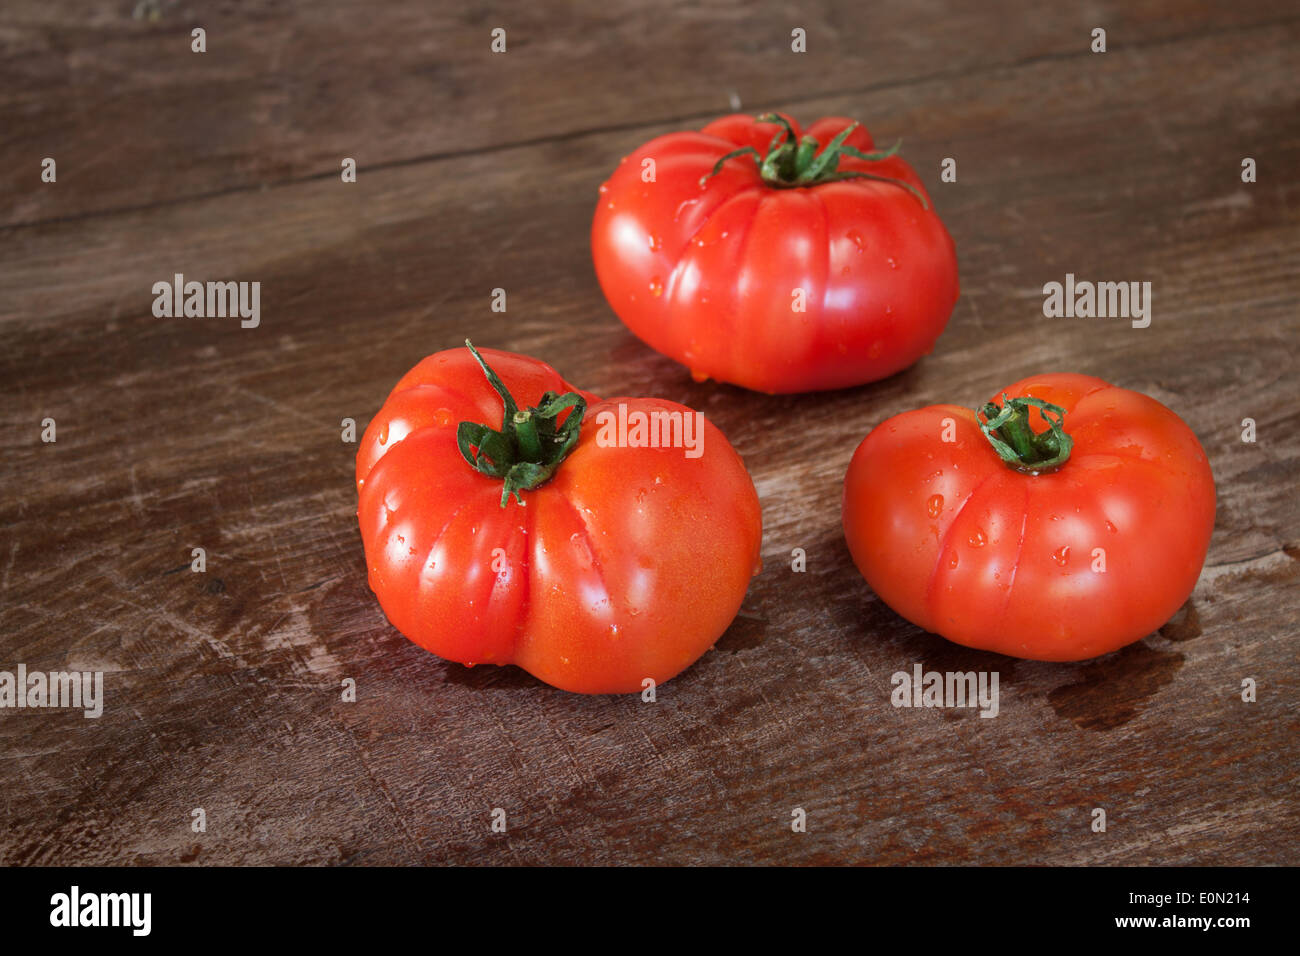 tomato wood wooden table closeup - Stock Image